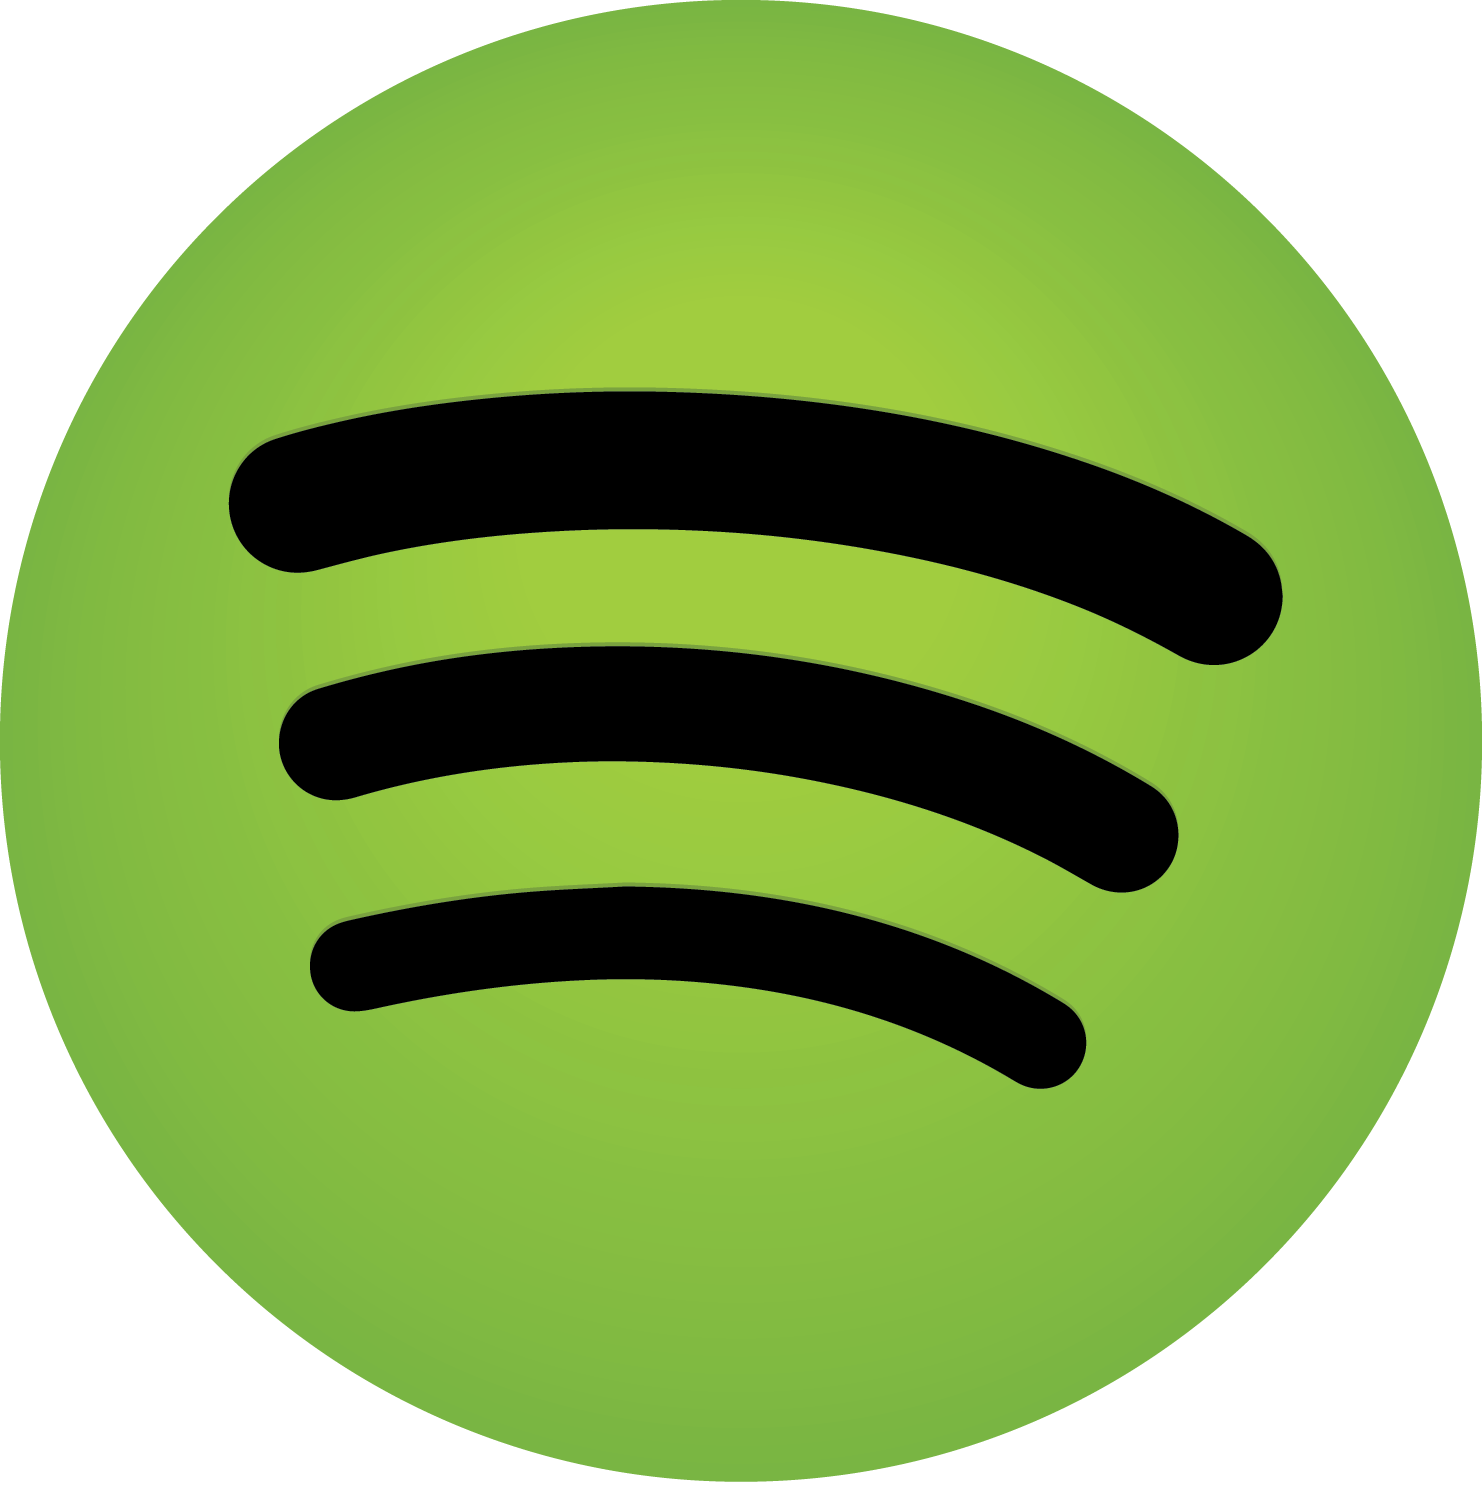 spotify